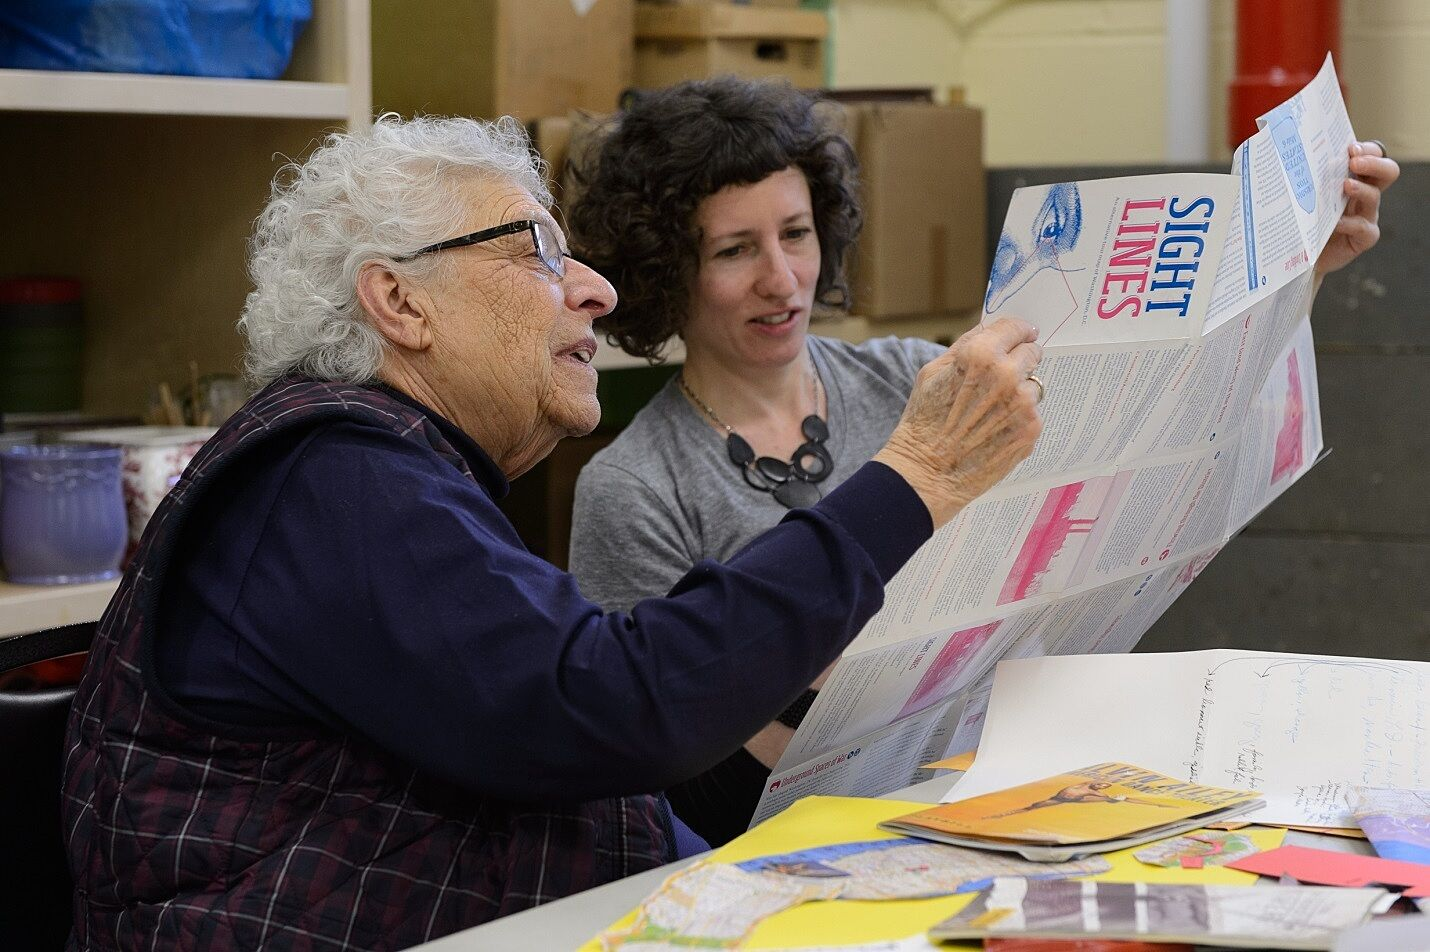 Artist Lize Mogel works on a map project with a senior citizen